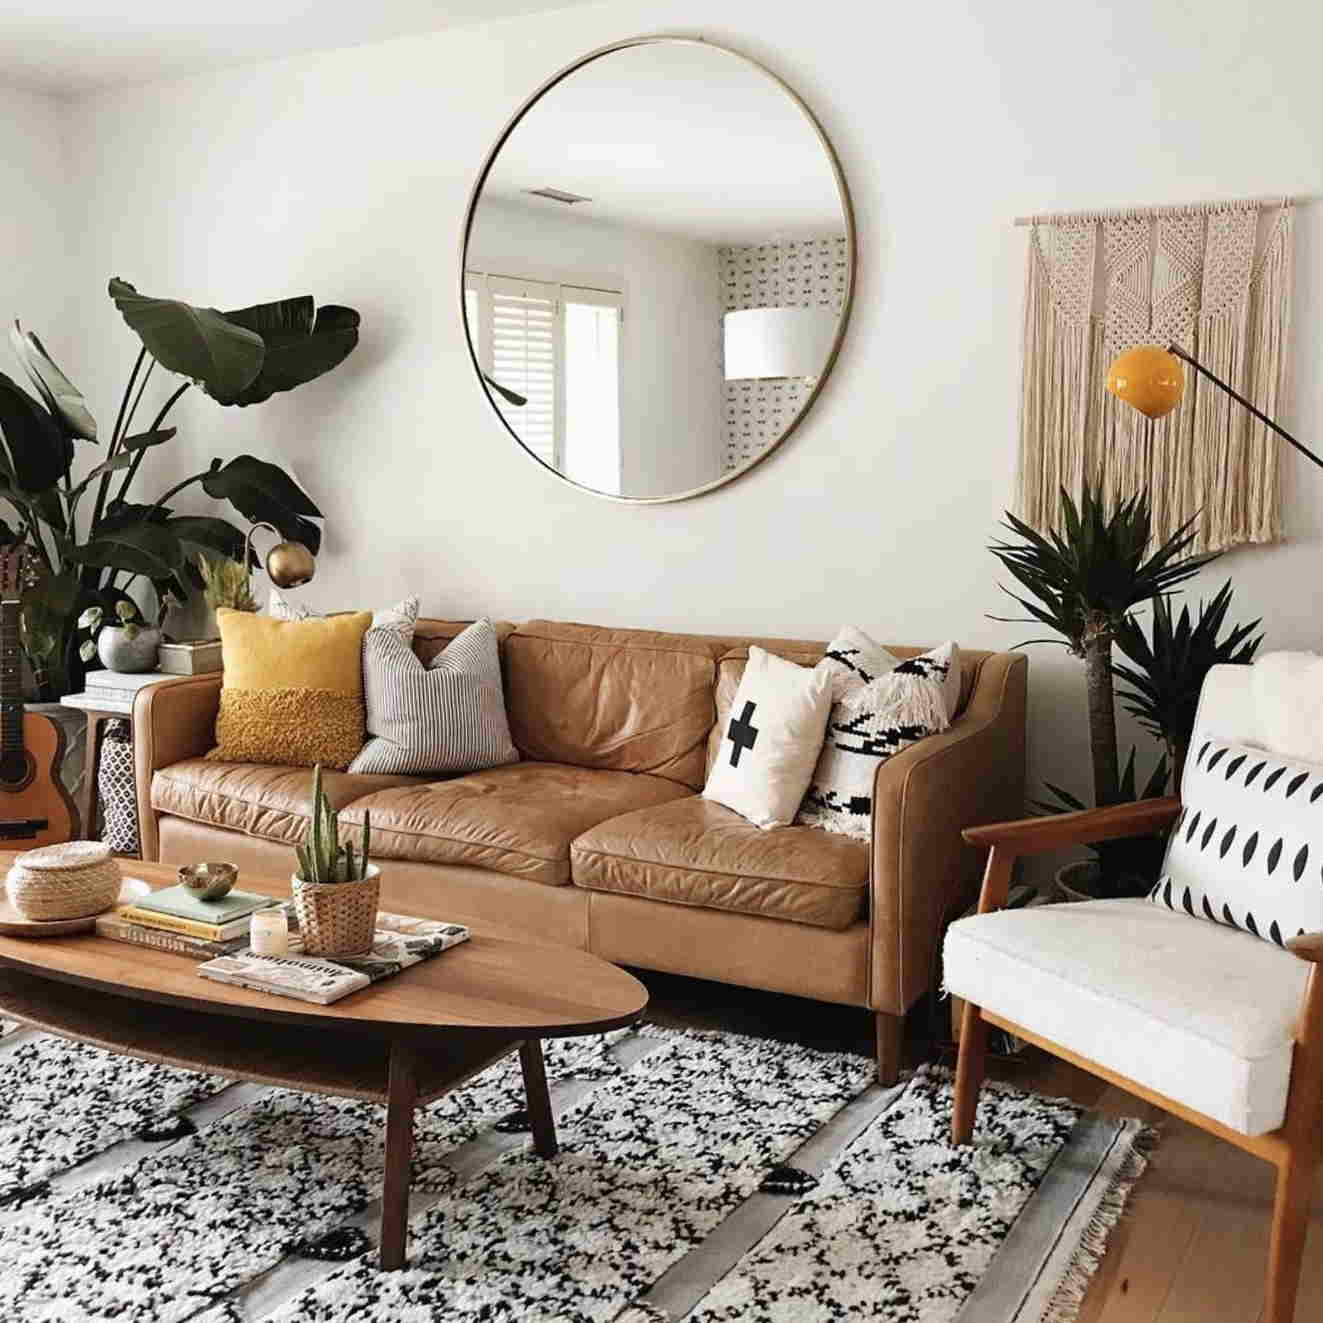 How to Decorate With Small Living Room Ideas